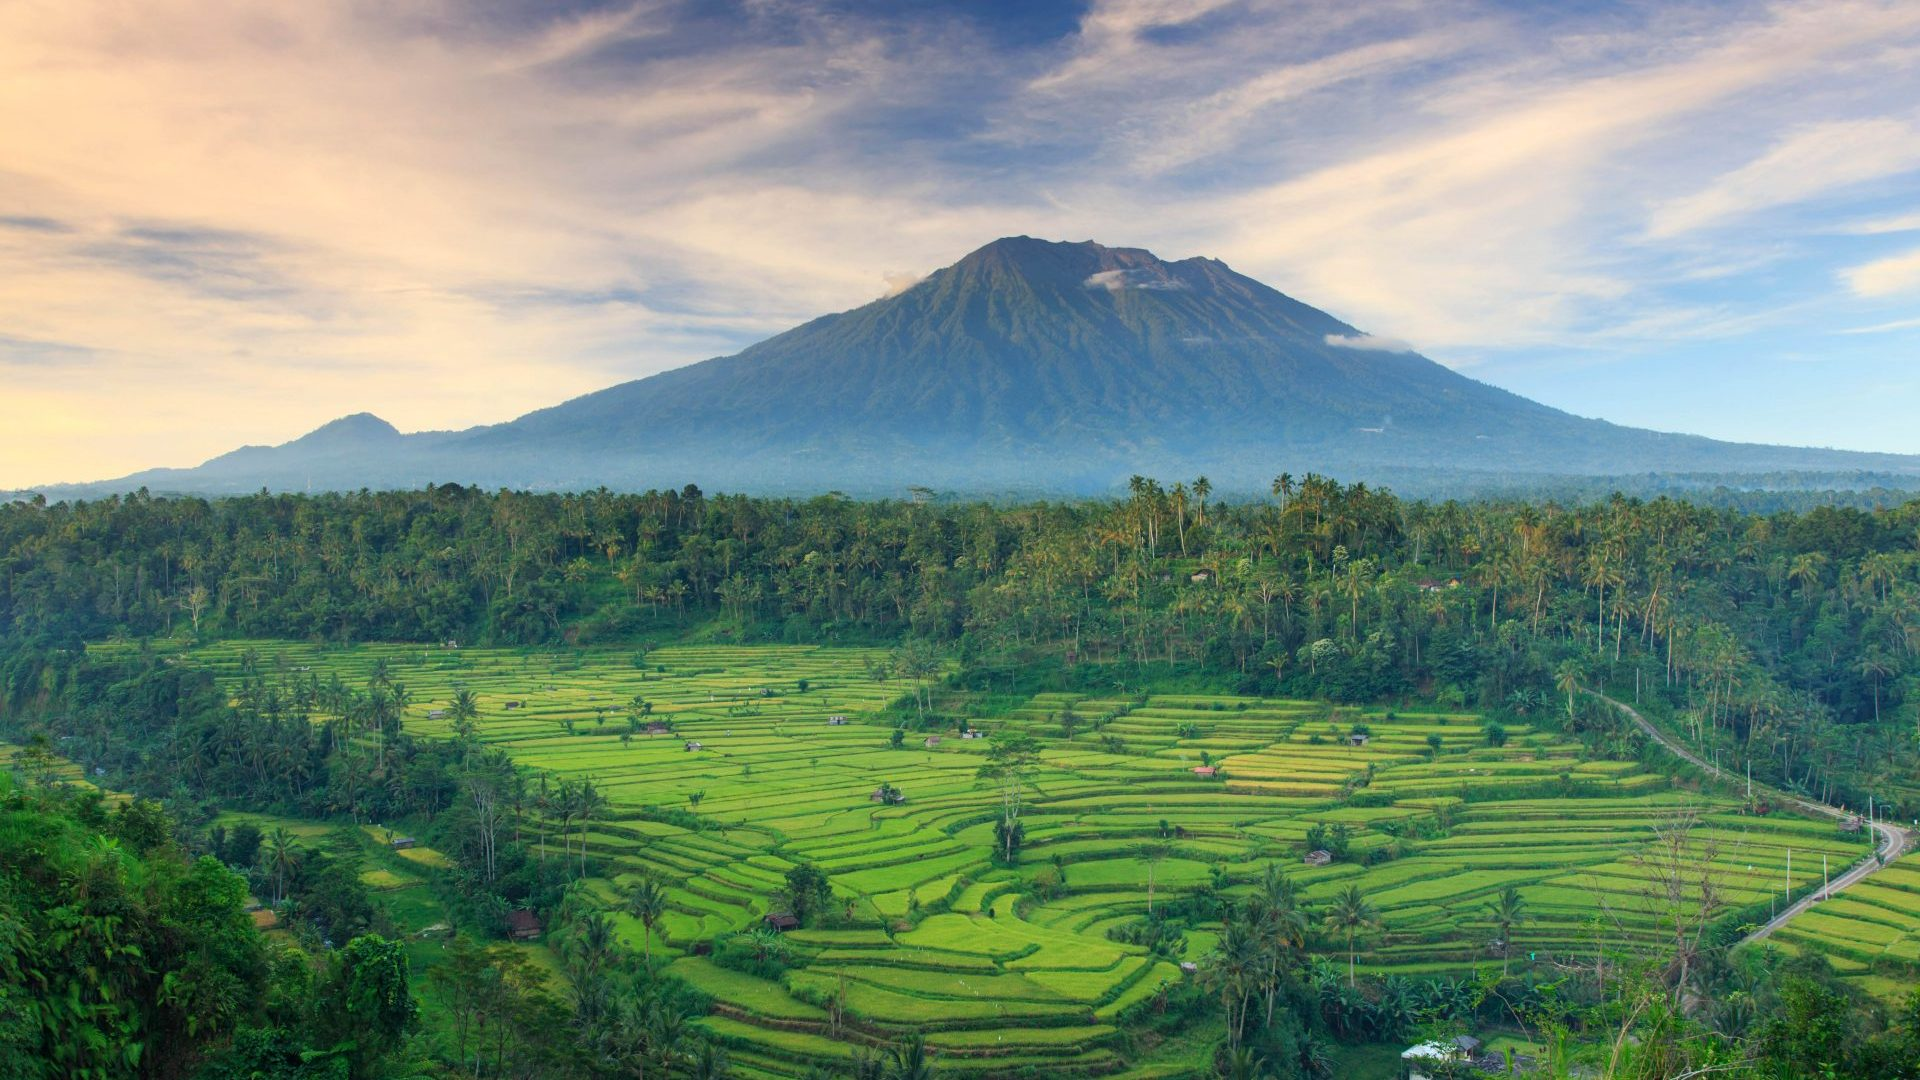 View of rice terraces and Gunung Agung volcano on Bali, Indonesia with GeoEx